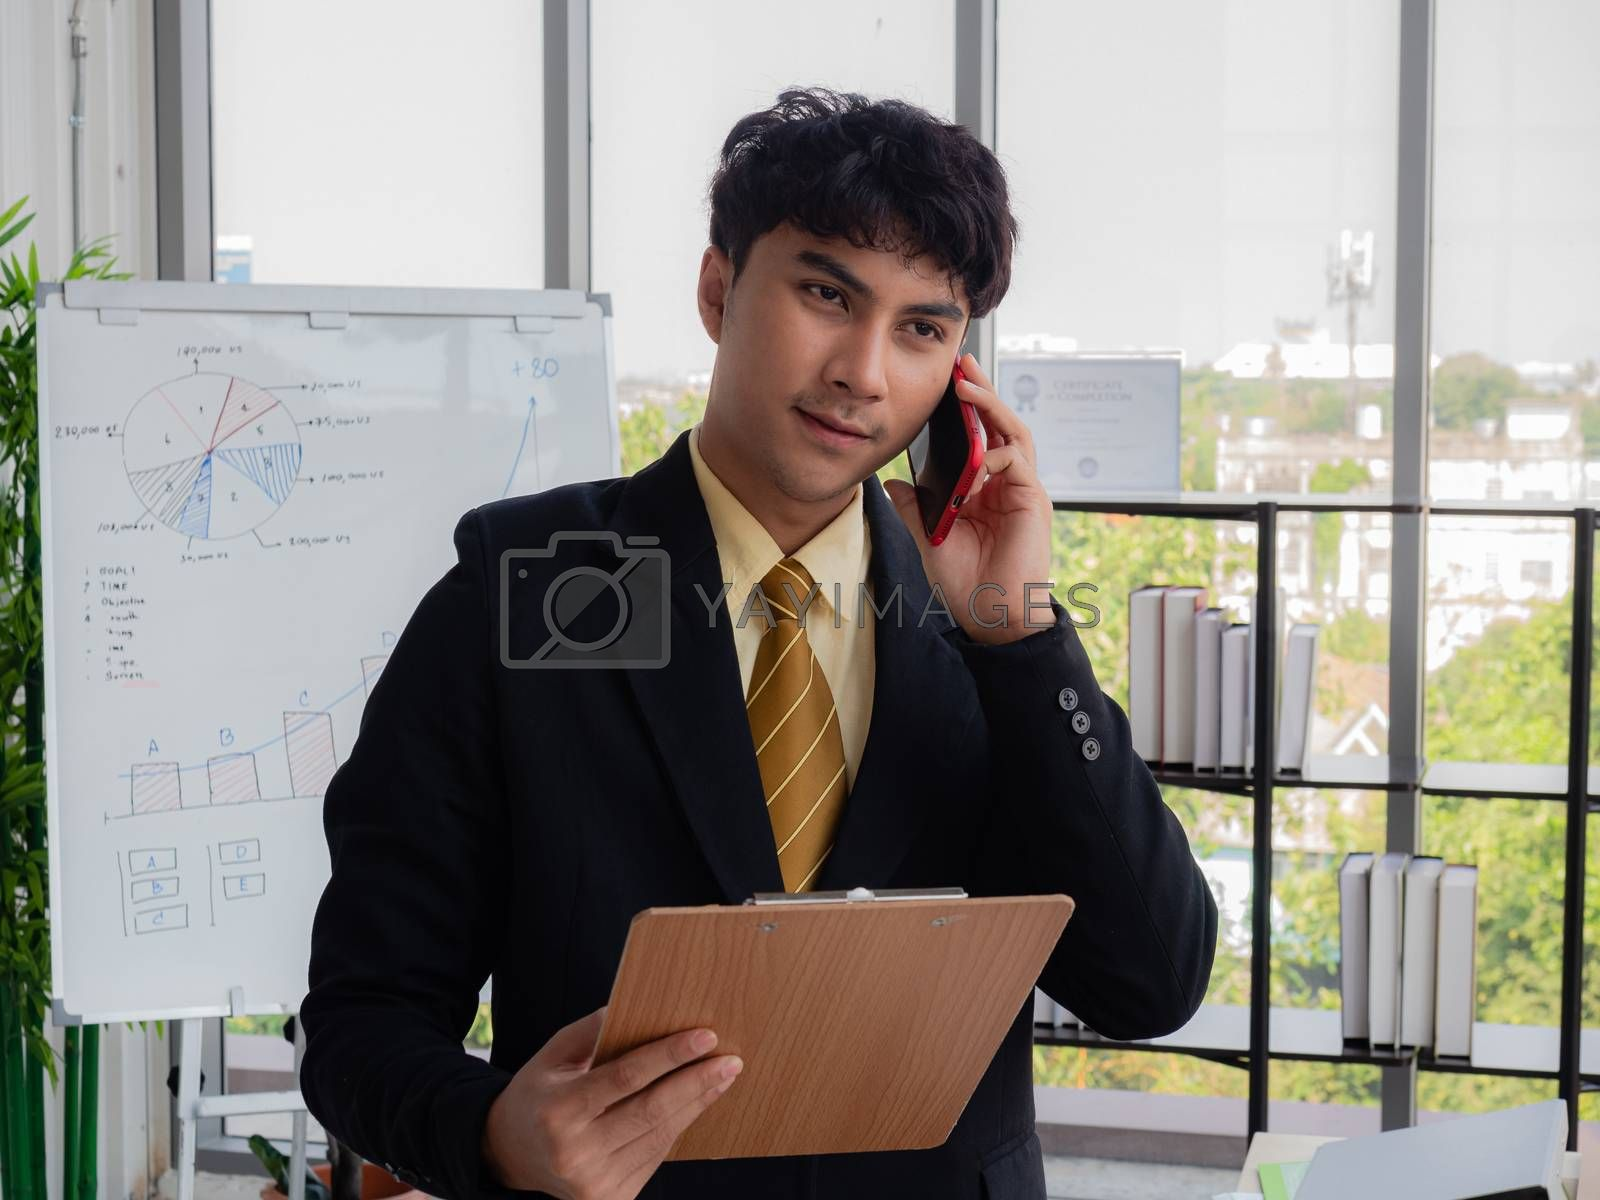 A young Asian businessman is reporting the company's performance to shareholders in a modern office.